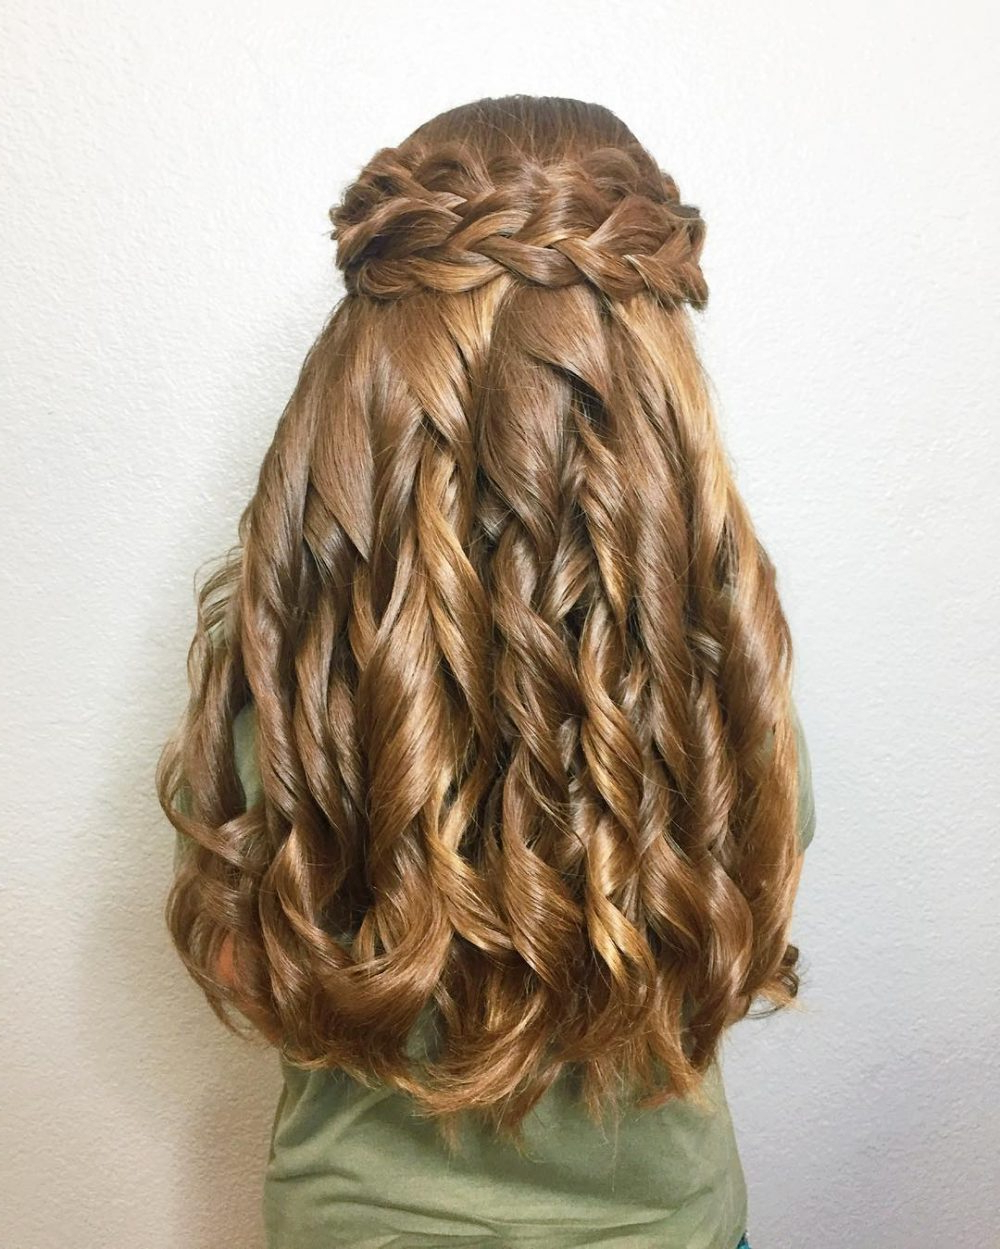 Newest Double Crown Braid Prom Hairstyles Throughout 23 Cute Prom Hairstyles For 2019 – Updos, Braids, Half Ups & Down Dos (View 17 of 20)